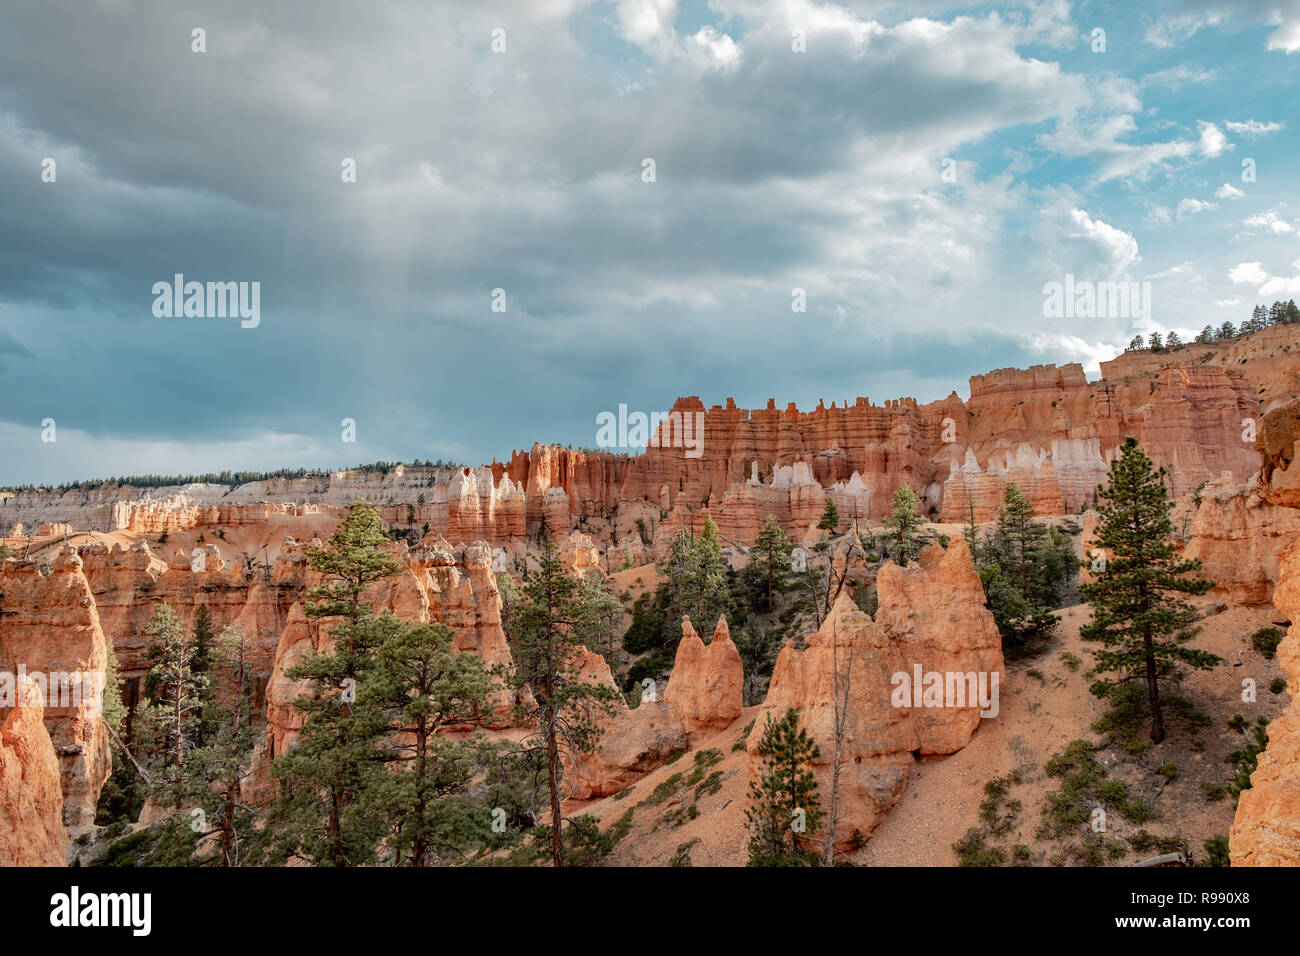 Spire shaped rock formations known as hoodoos at Bryce Canyon National Park in Utah, USA - Stock Image